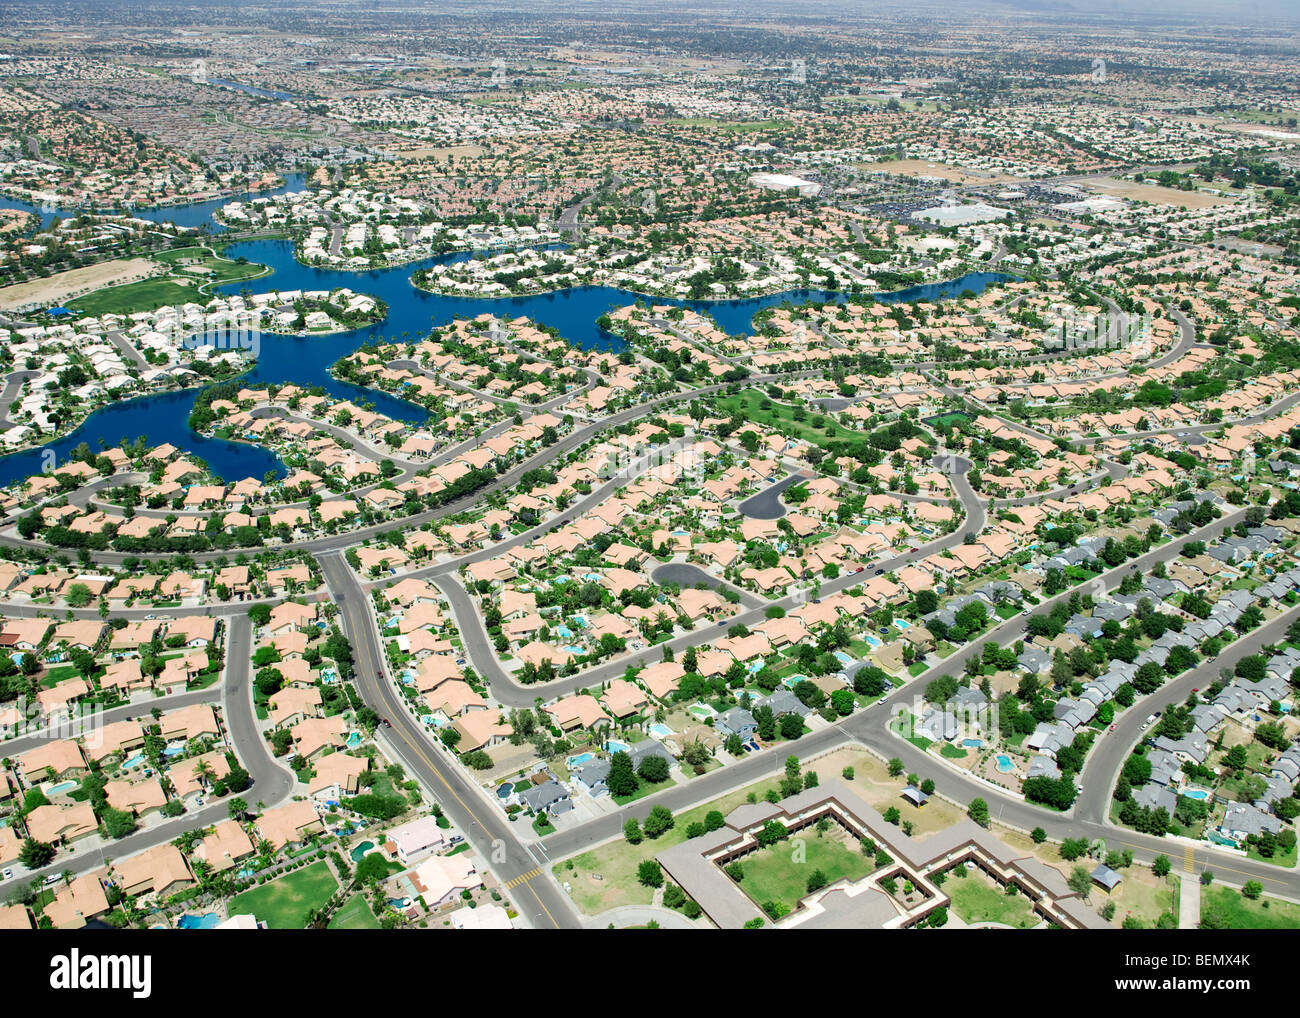 Aerial View Of An American Suburb Stock Photo 26275107